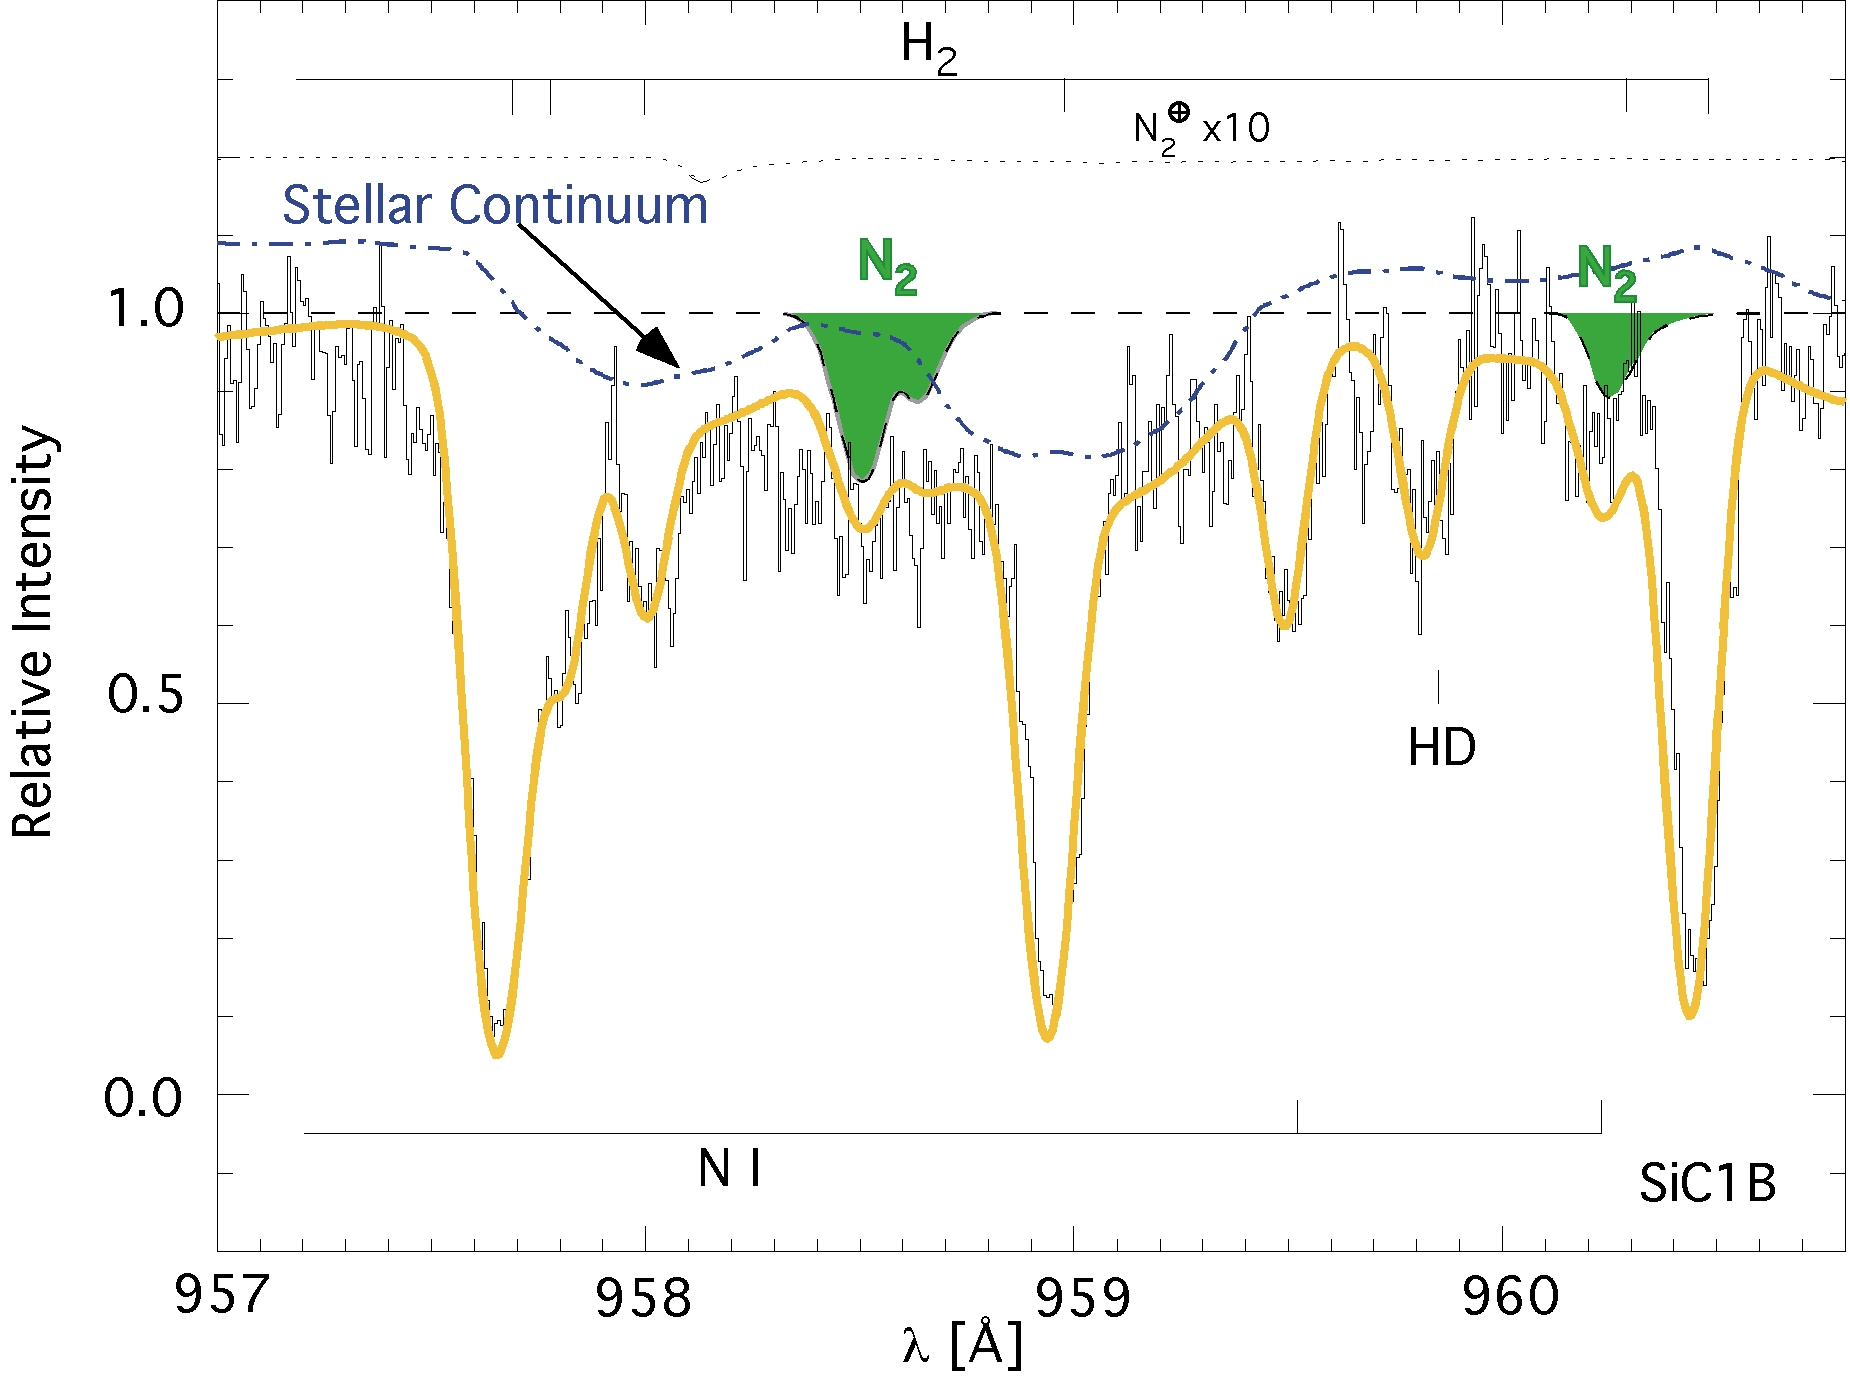 The Quasar Absorption Line Group at New Mexico State University